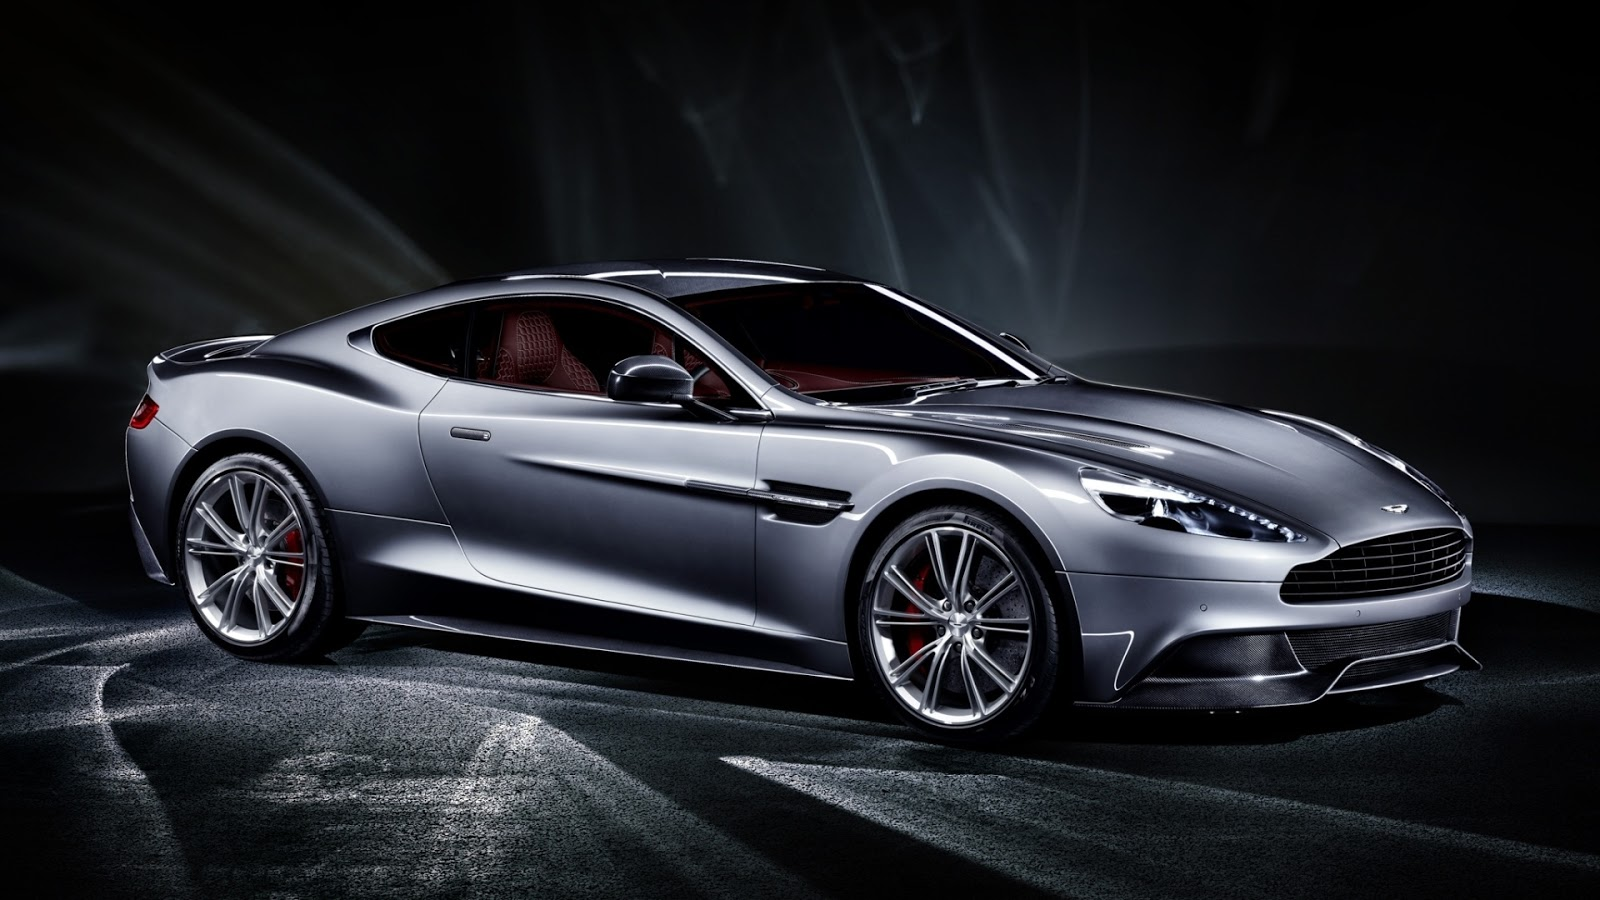 Aston Martin Vanquish Silver Full HD Desktop Wallpapers 1080p 1600x900